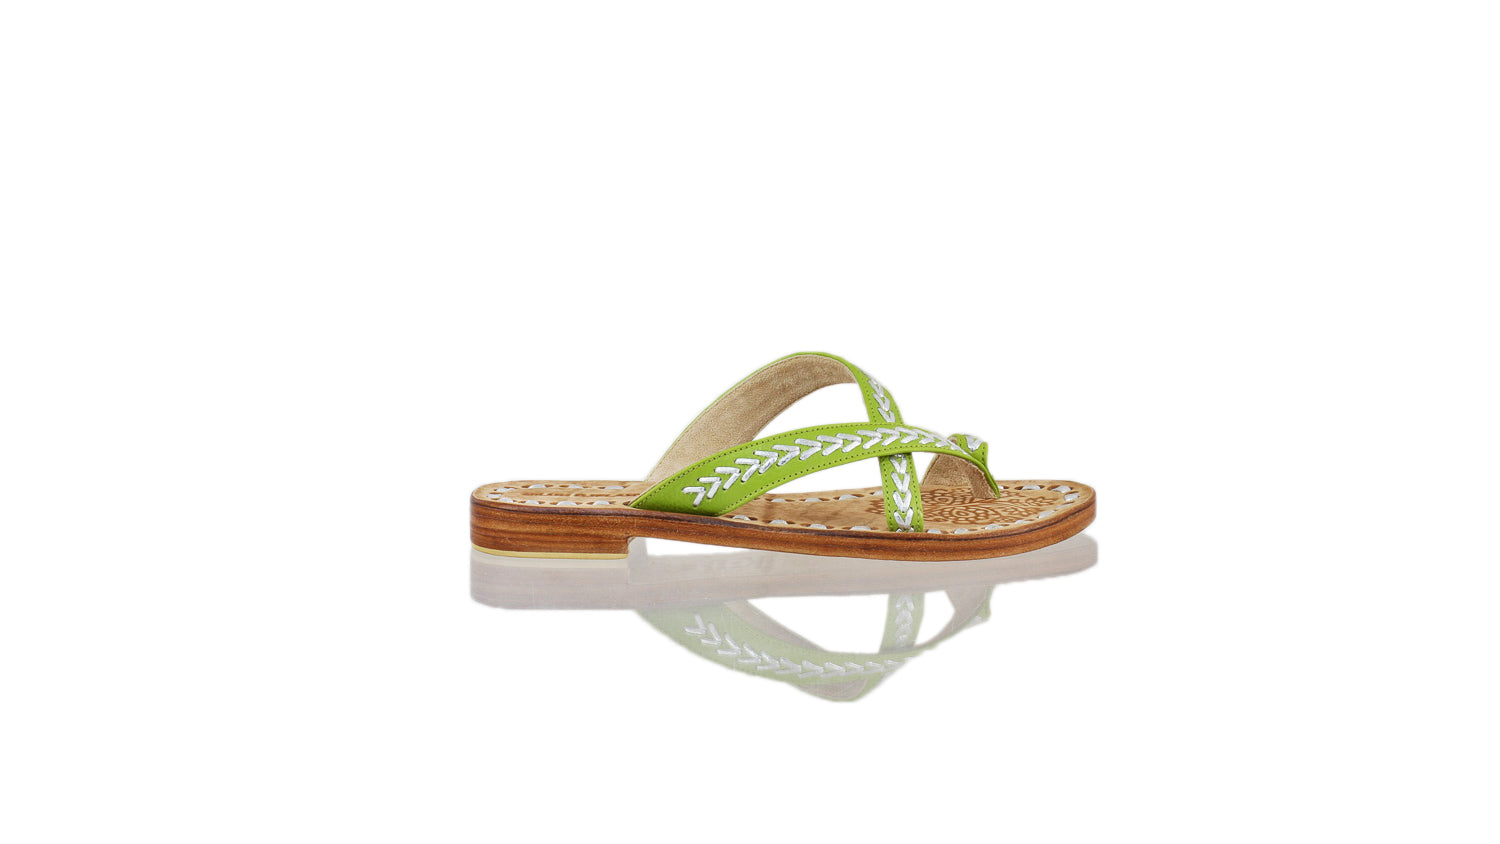 Leather-shoes-Romance Without Strap 20mm Flat - Lime Green & Silver-sandals flat-NILUH DJELANTIK-NILUH DJELANTIK